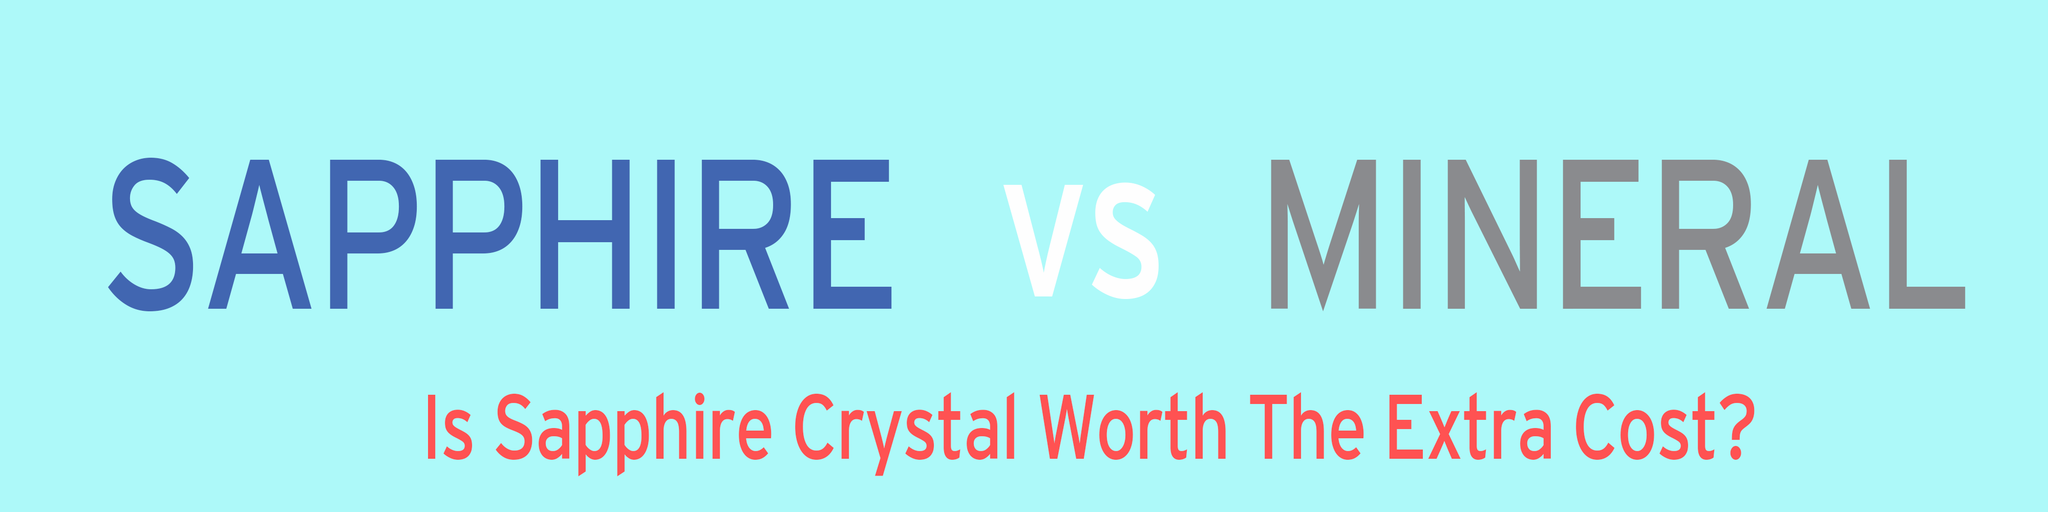 What's The Benefit Of Sapphire Crystal? | Sapphire vs